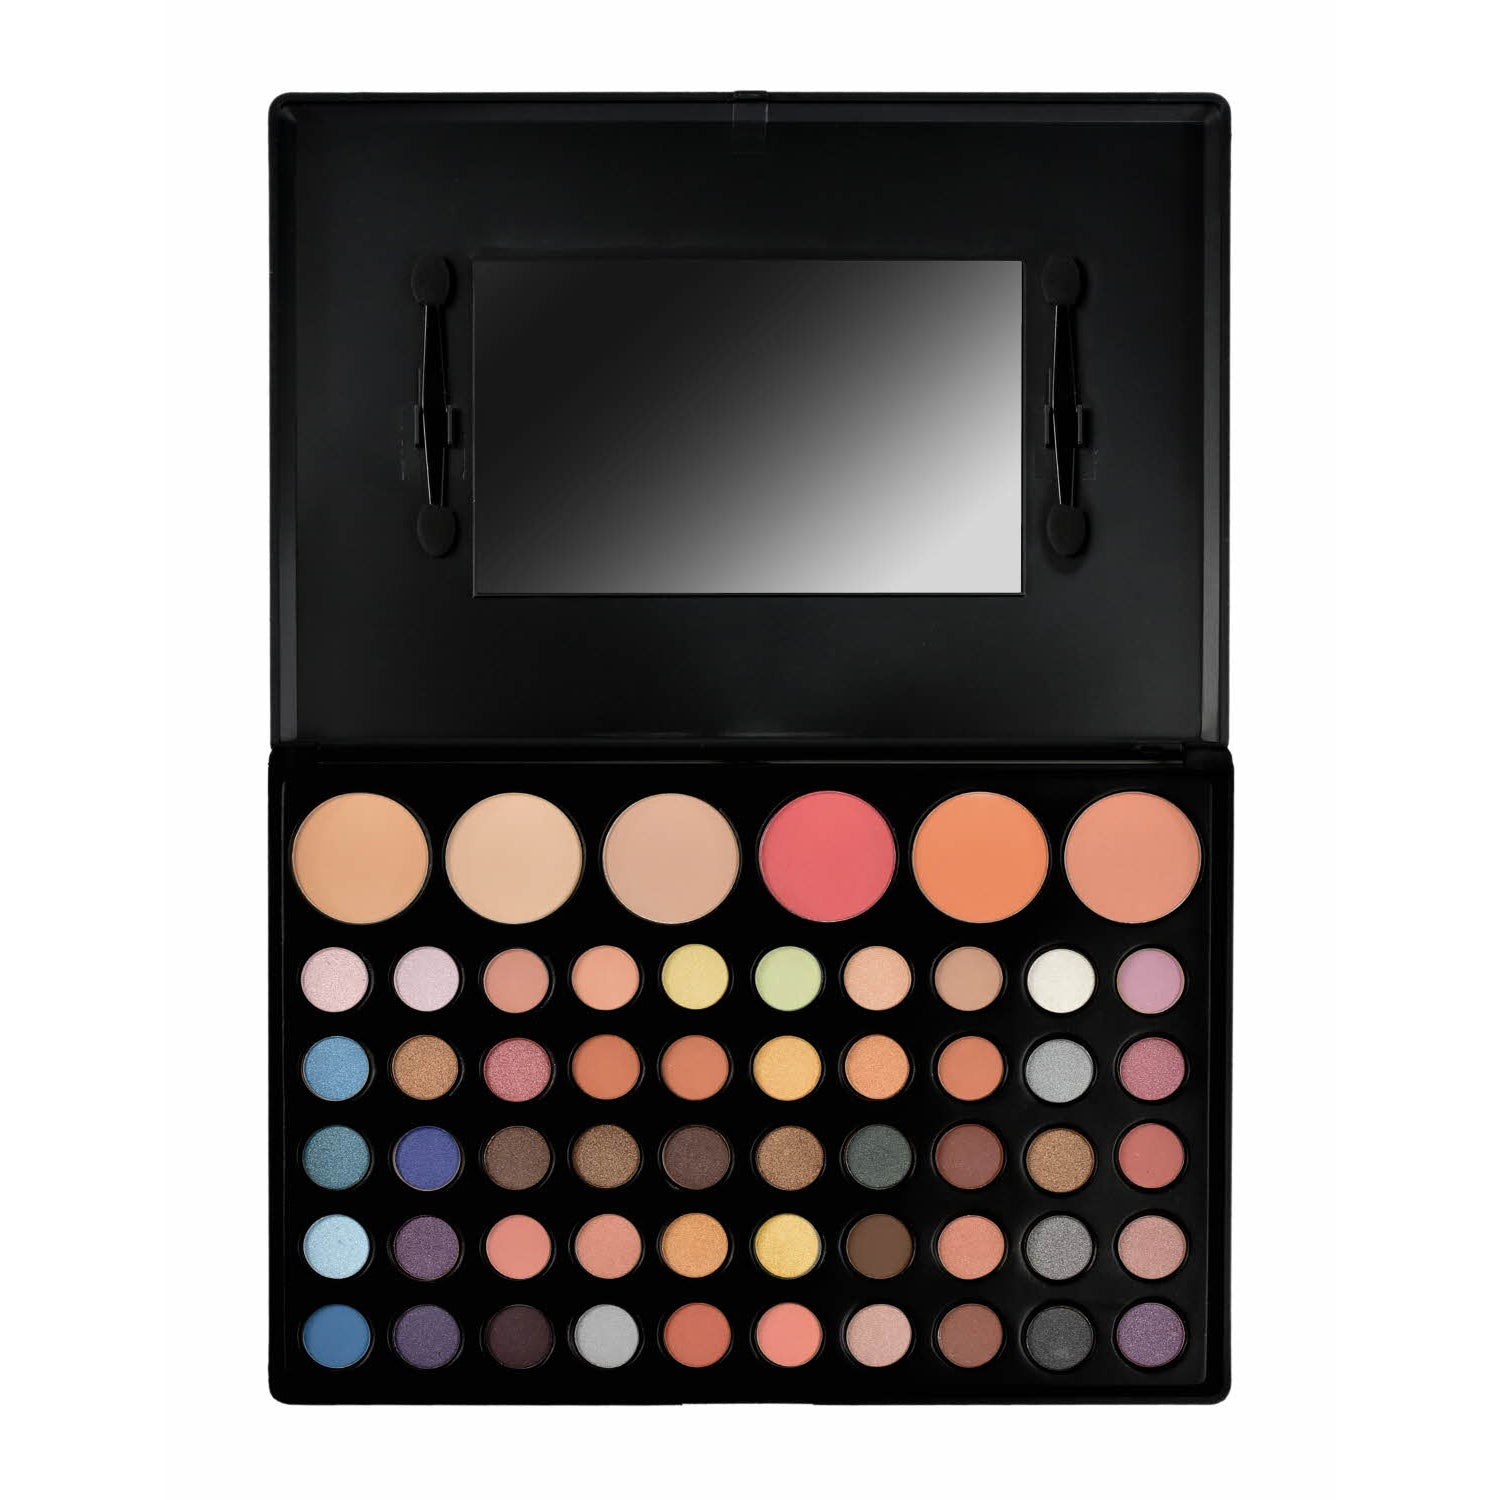 Celavi Pro Artist Collection Makeup Palette 56 Colors (Contour, Blush & Eyeshadow Palette)